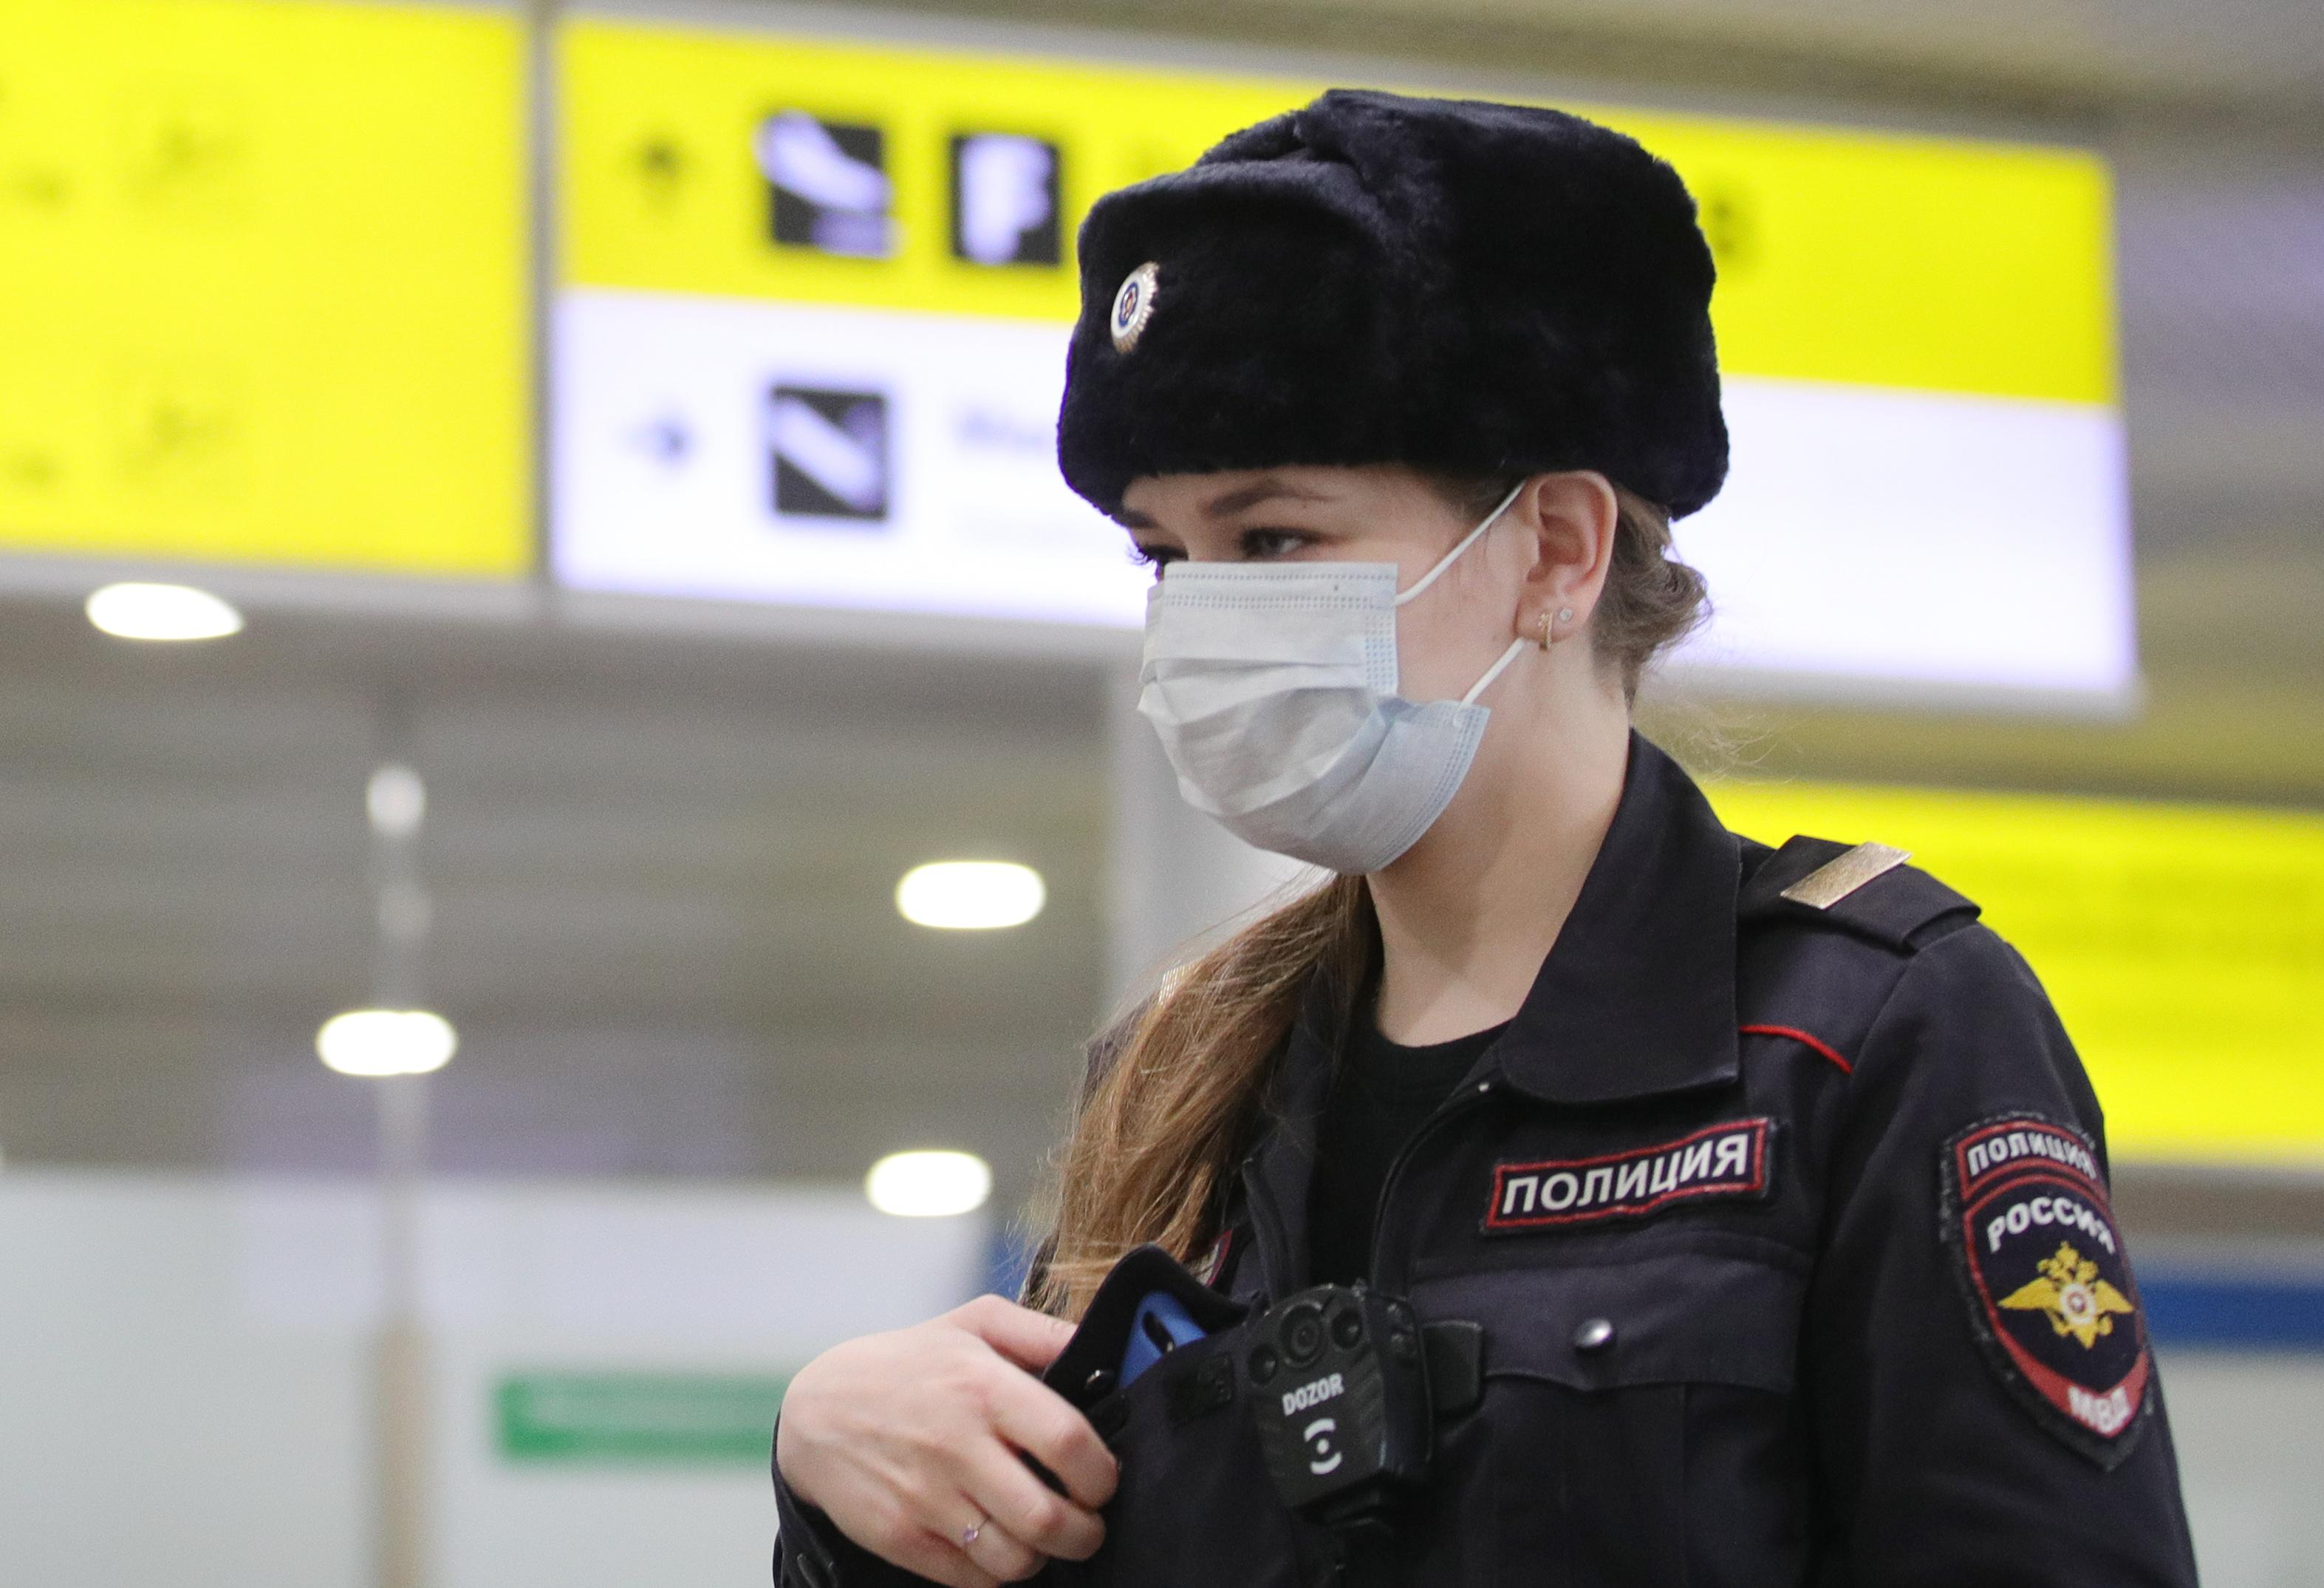 MOSCOW REGION, RUSSIA - APRIL 1, 2020: A police officer in a medical mask at Terminal D of Sheremetyevo International Airport where Russian citizens have arrived from New Delhi. The airport shuts down Terminal D from April 1, 2020 due to decrease of passenger flow amid the COVID-19 coronavirus pandemic. All international flights are transferred to Terminal F, internal to Terminal B. Sergei Bobylev/TASS (Photo by Sergei Bobylev\TASS via Getty Images)